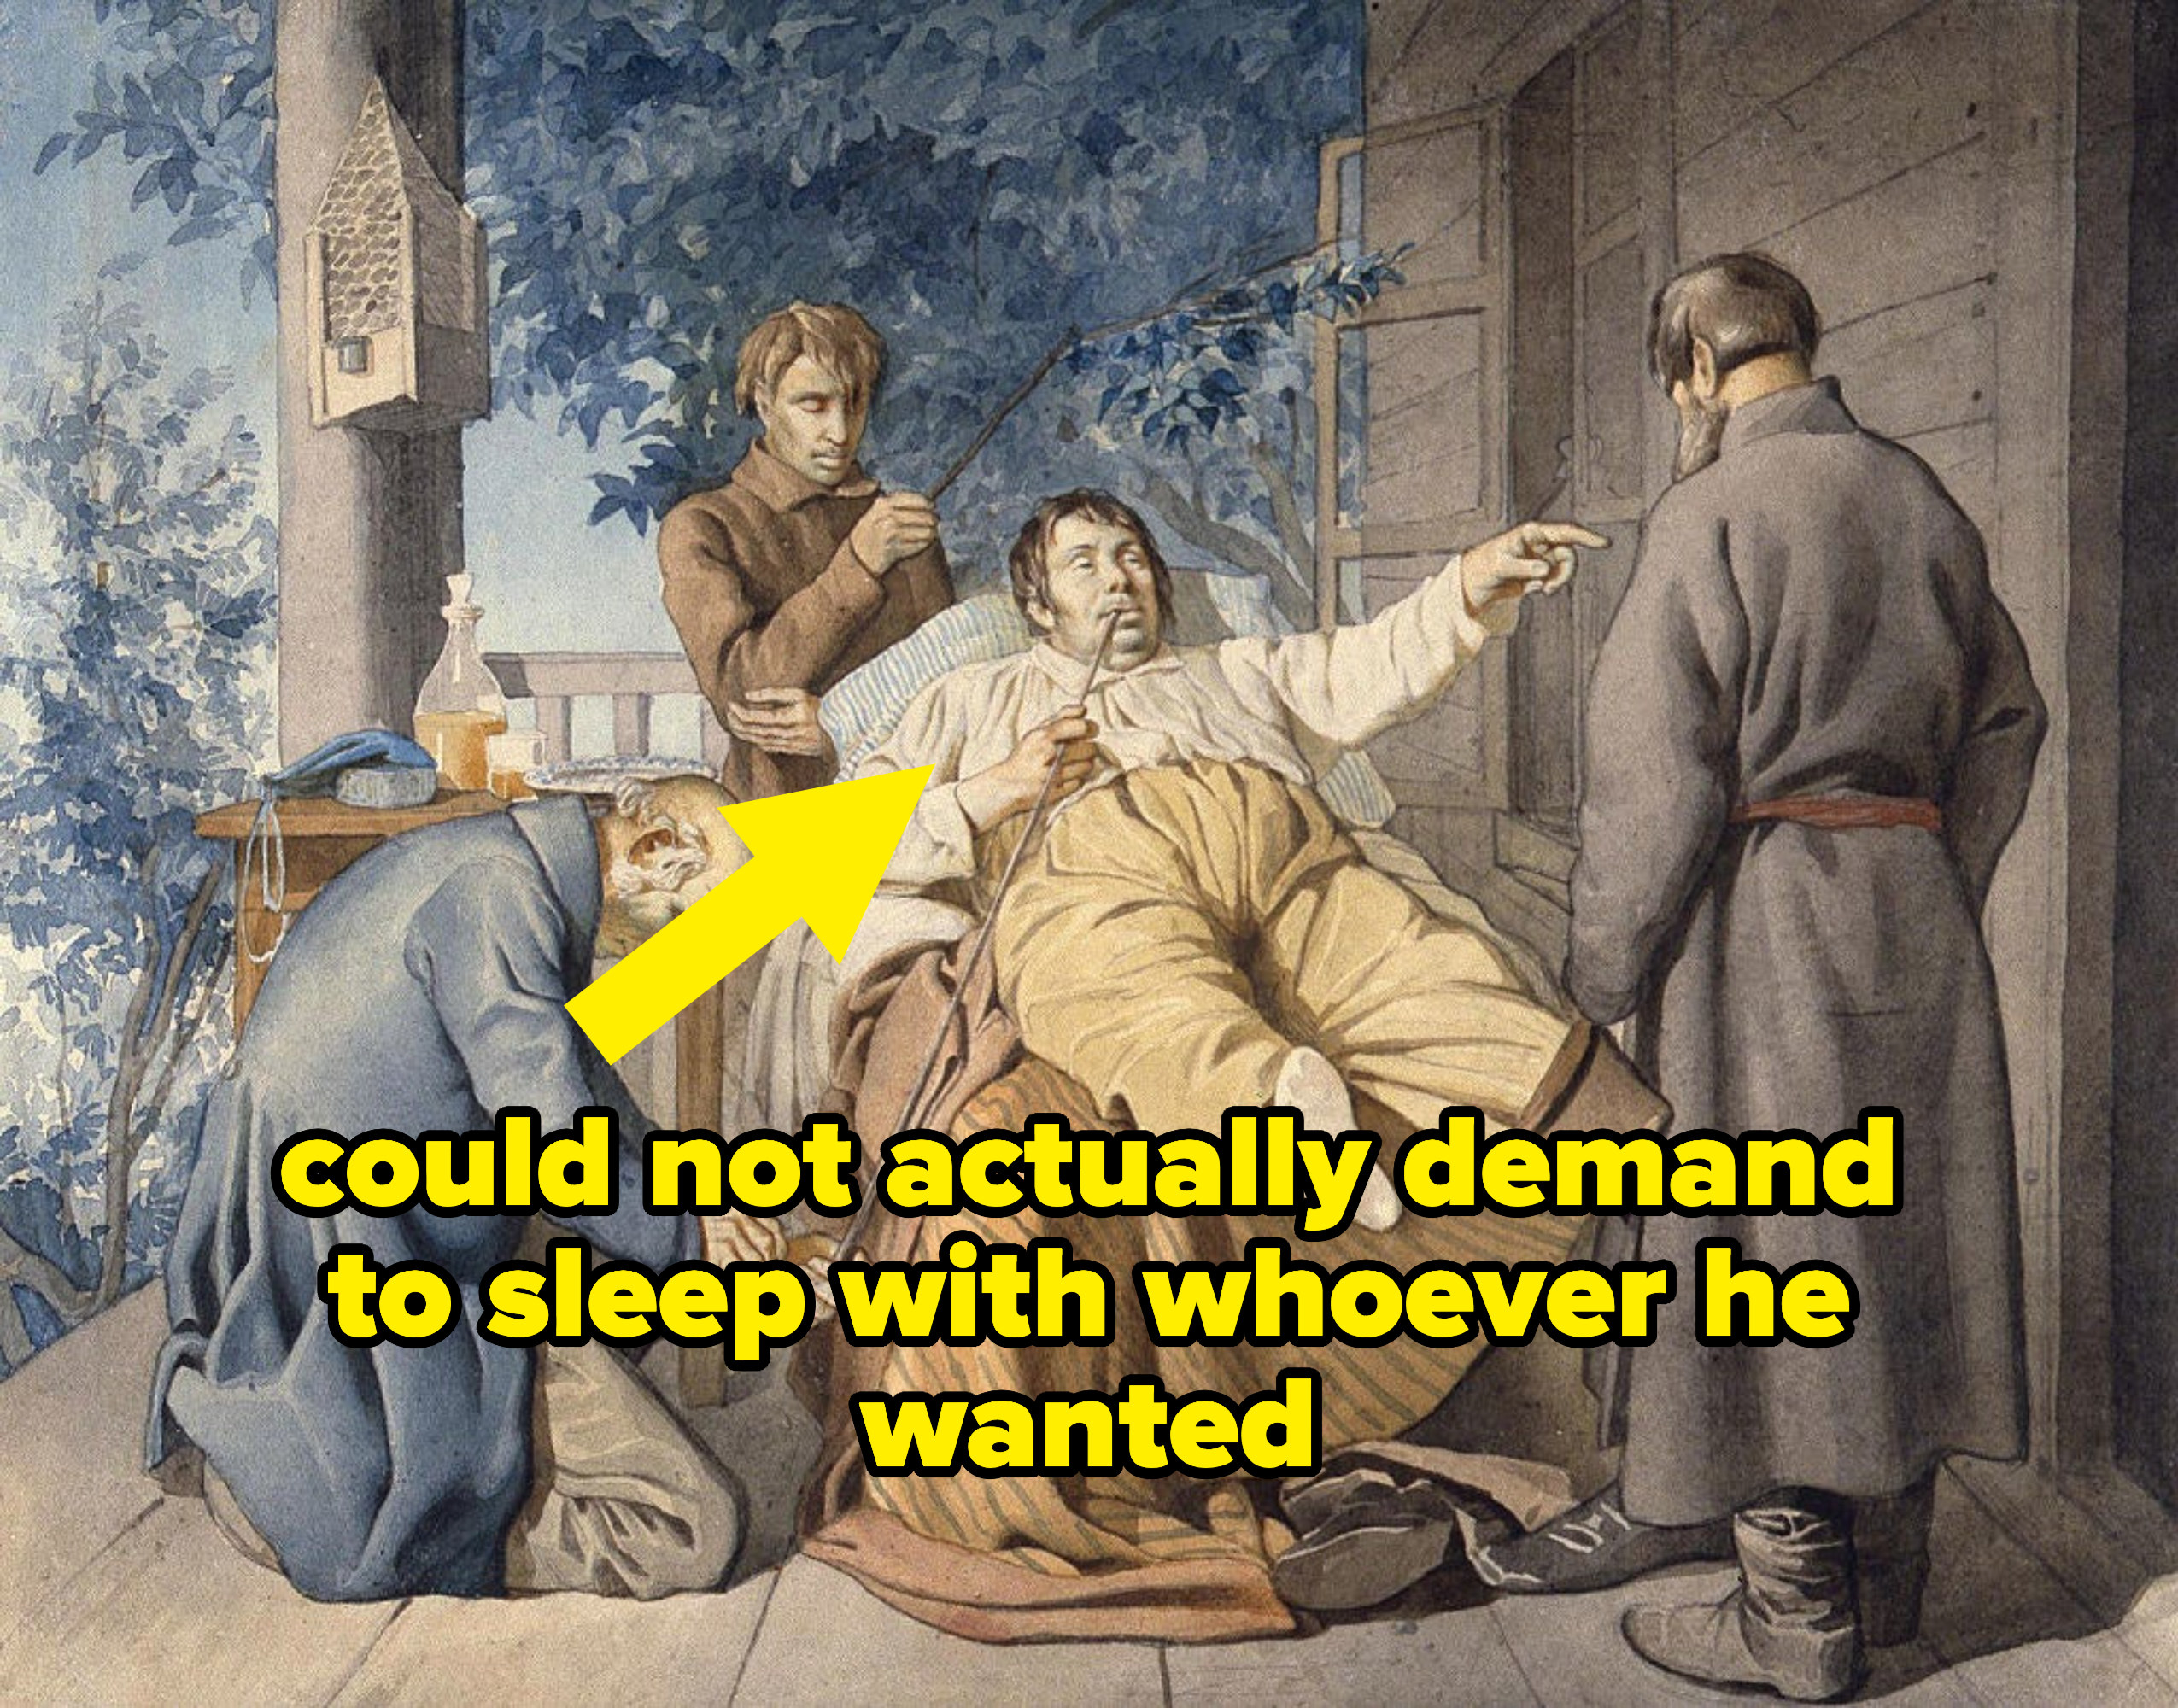 """lord being carried by serfs labeled """"could not actually demand to sleep with whoever he wanted"""""""